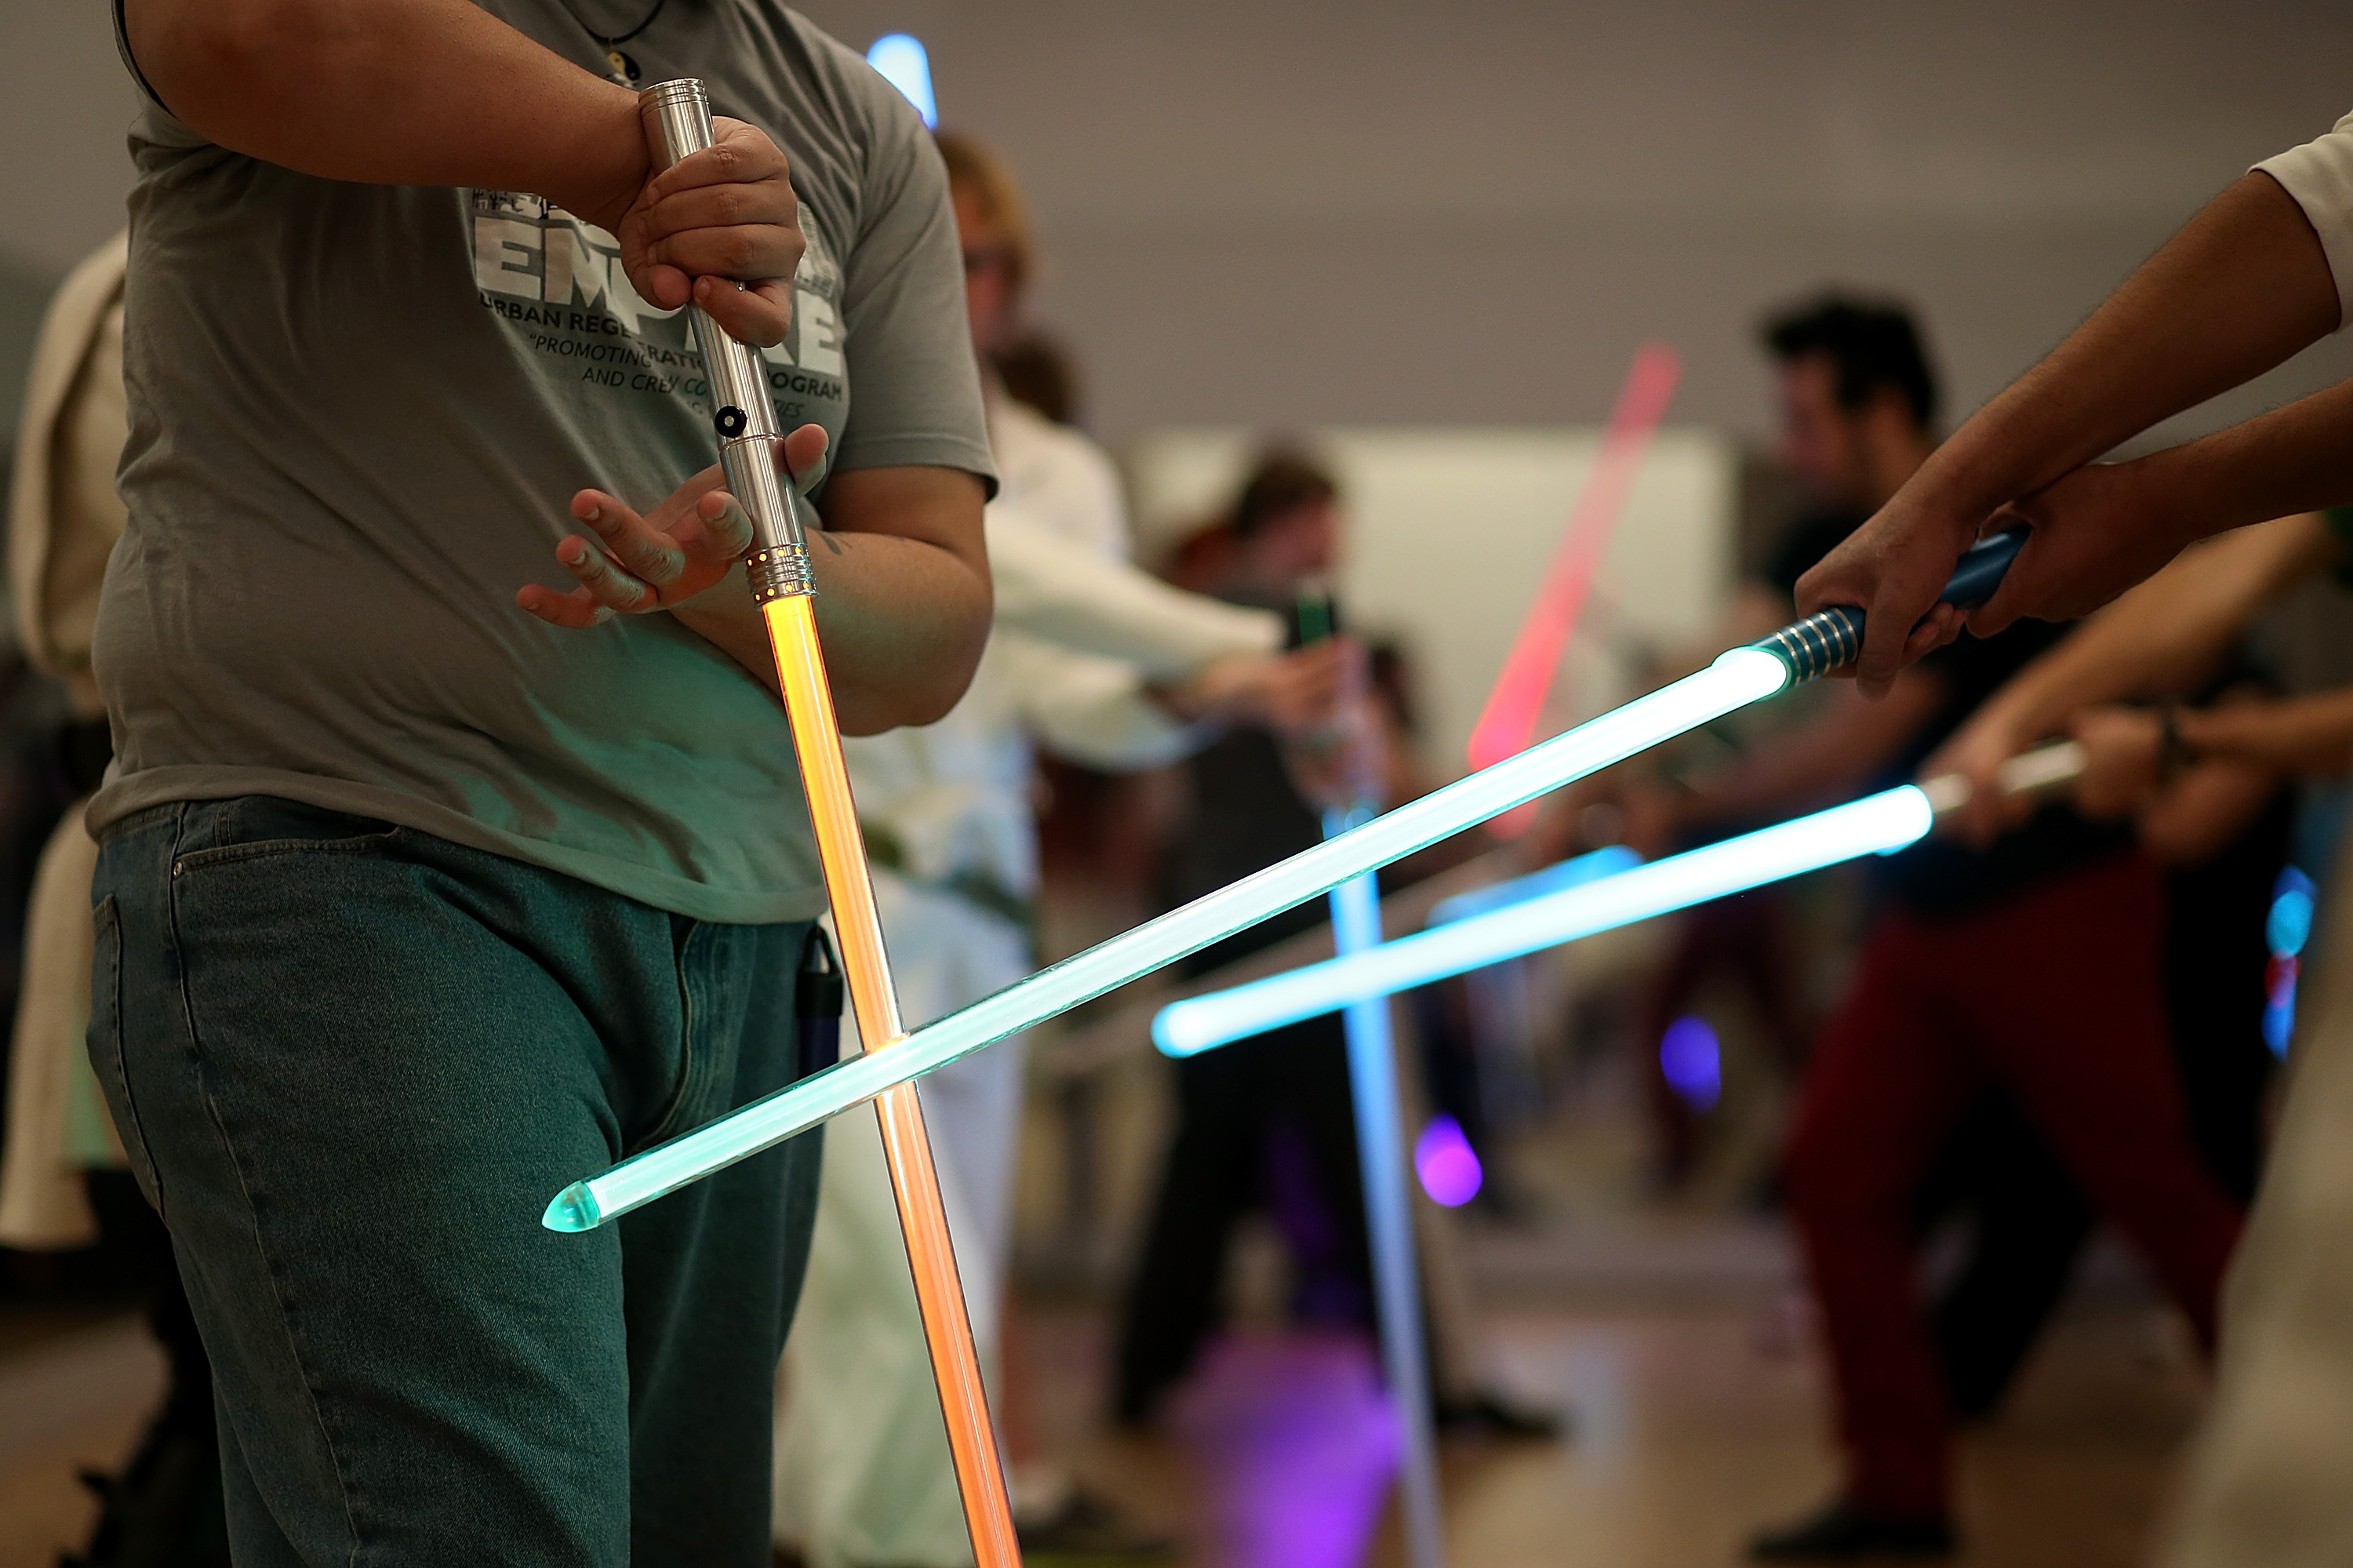 Students perform combat moves using lightsabers during a Golden Gate Knights class in saber choreography on February 24, 2013 in San Francisco.